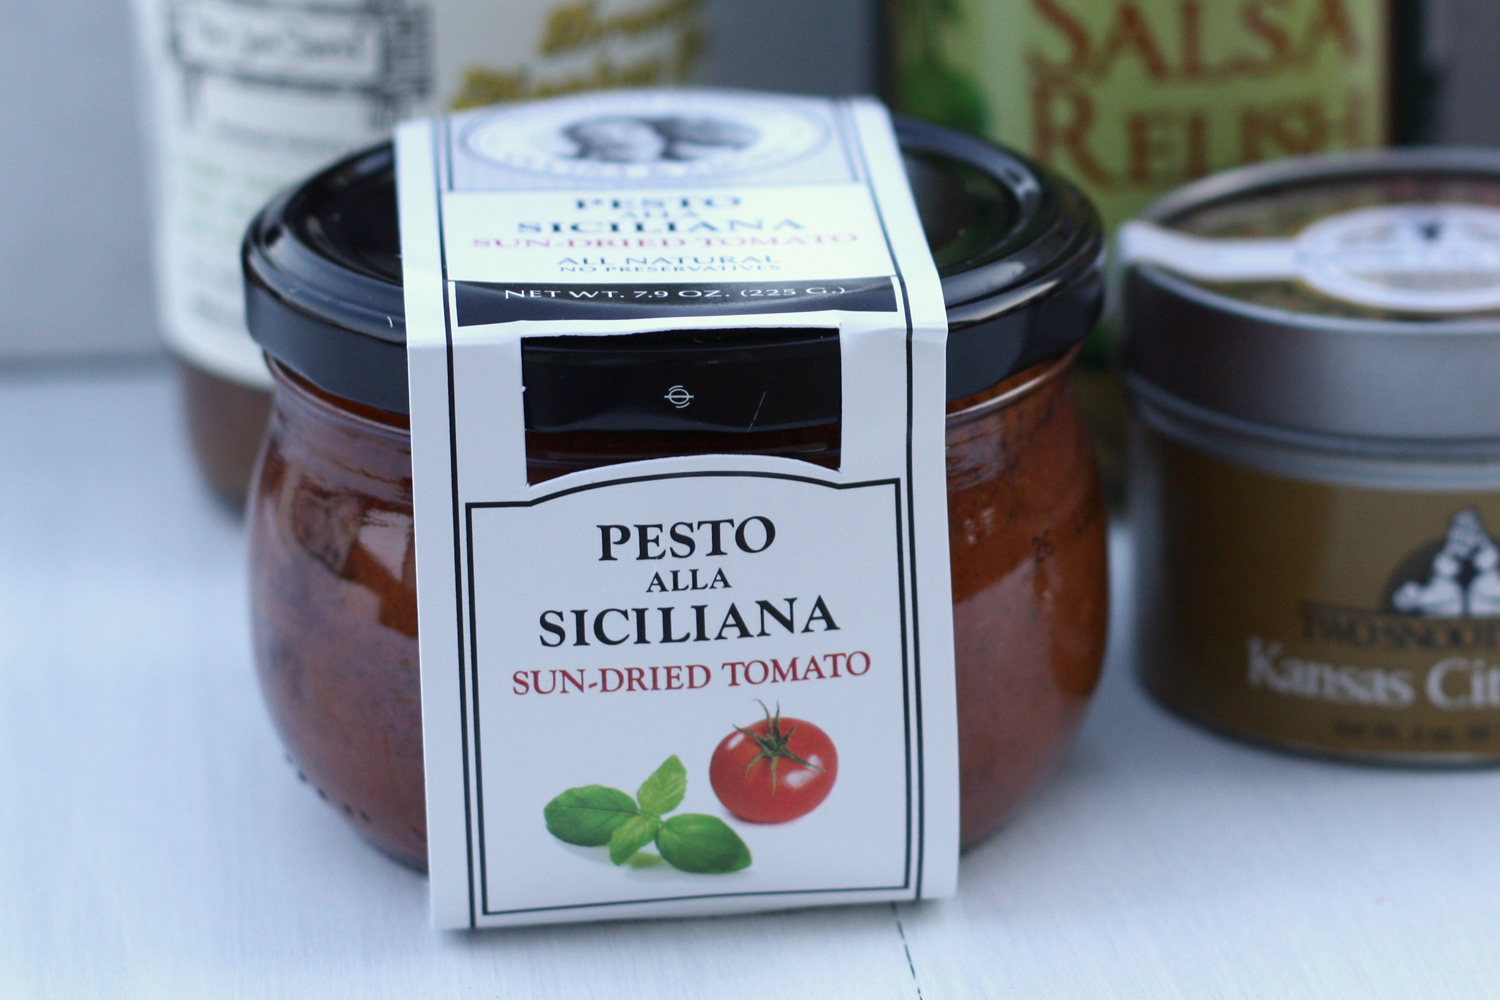 Cucina & Amore Pesto Alla Siciliana That Winsome Girl Taste Trunk August 2013 Gourmet Trunk